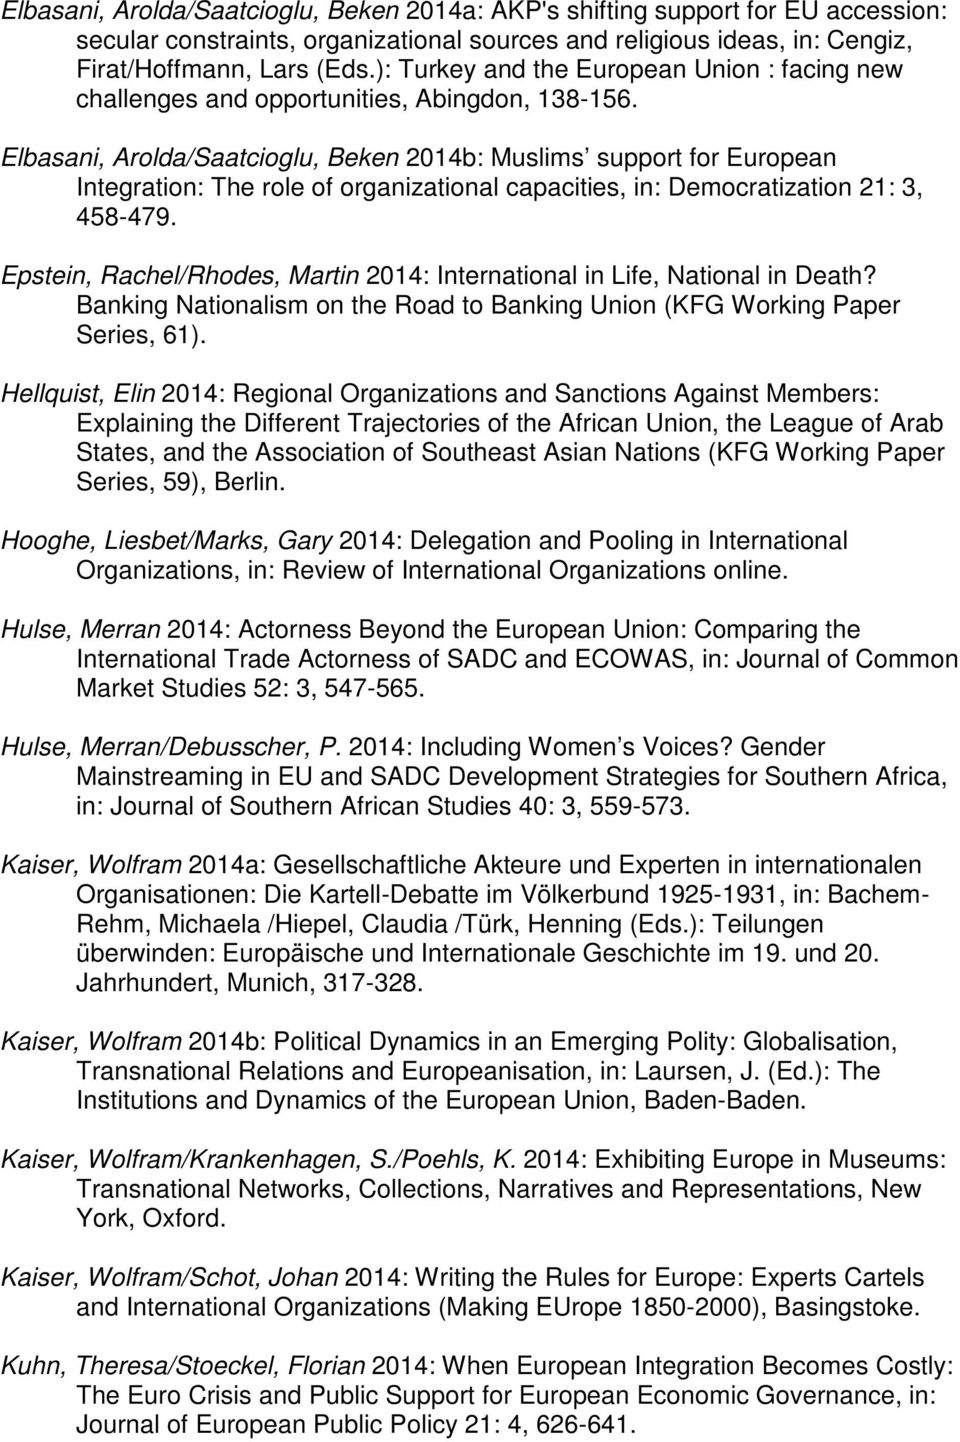 Elbasani, Arolda/Saatcioglu, Beken 2014b: Muslims support for European Integration: The role of organizational capacities, in: Democratization 21: 3, 458-479.